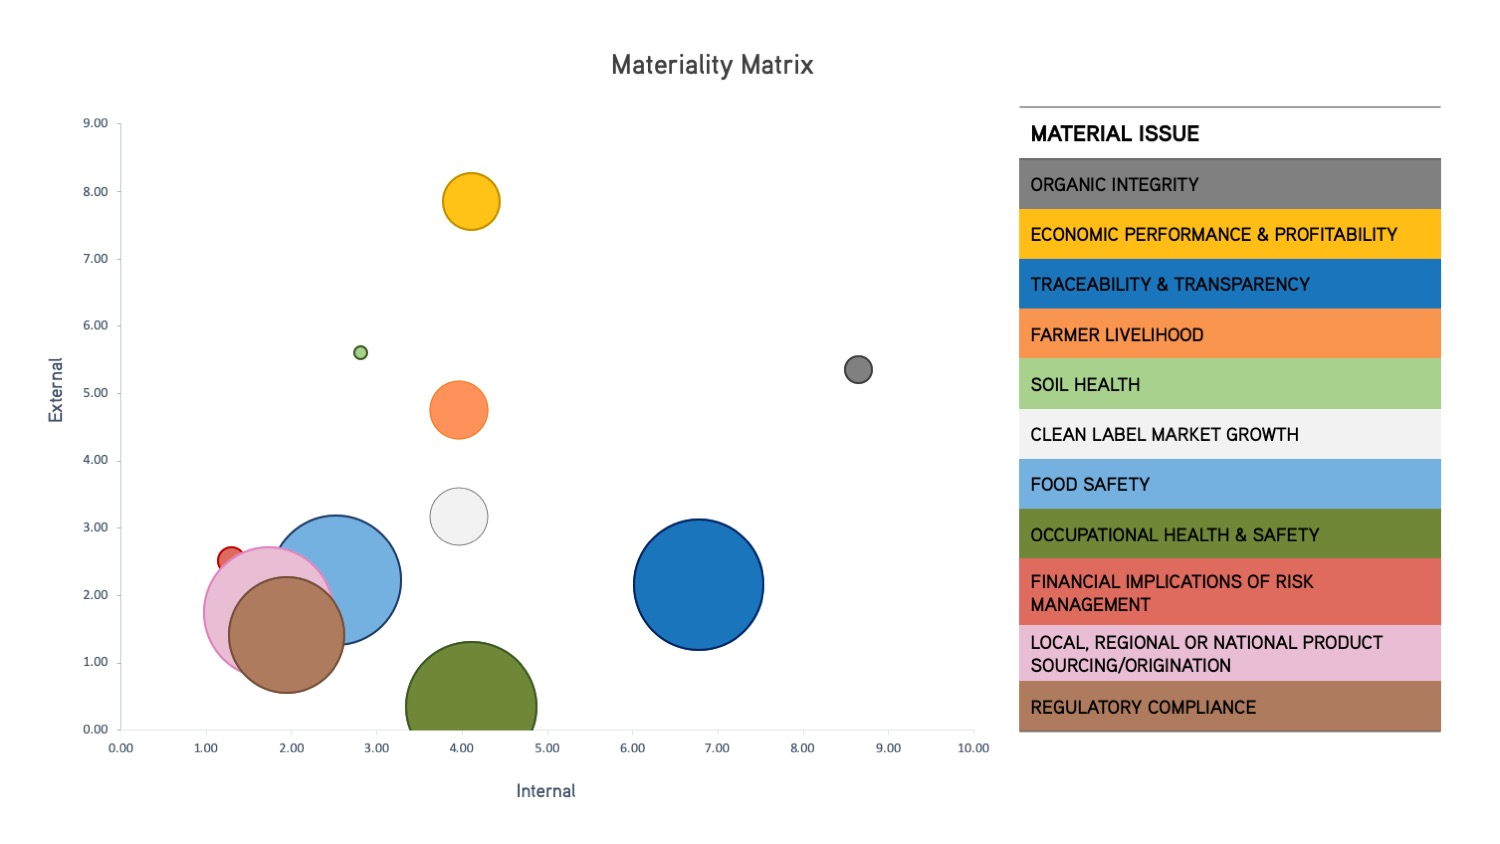 pipeline foods impact materiality matrix.jpg